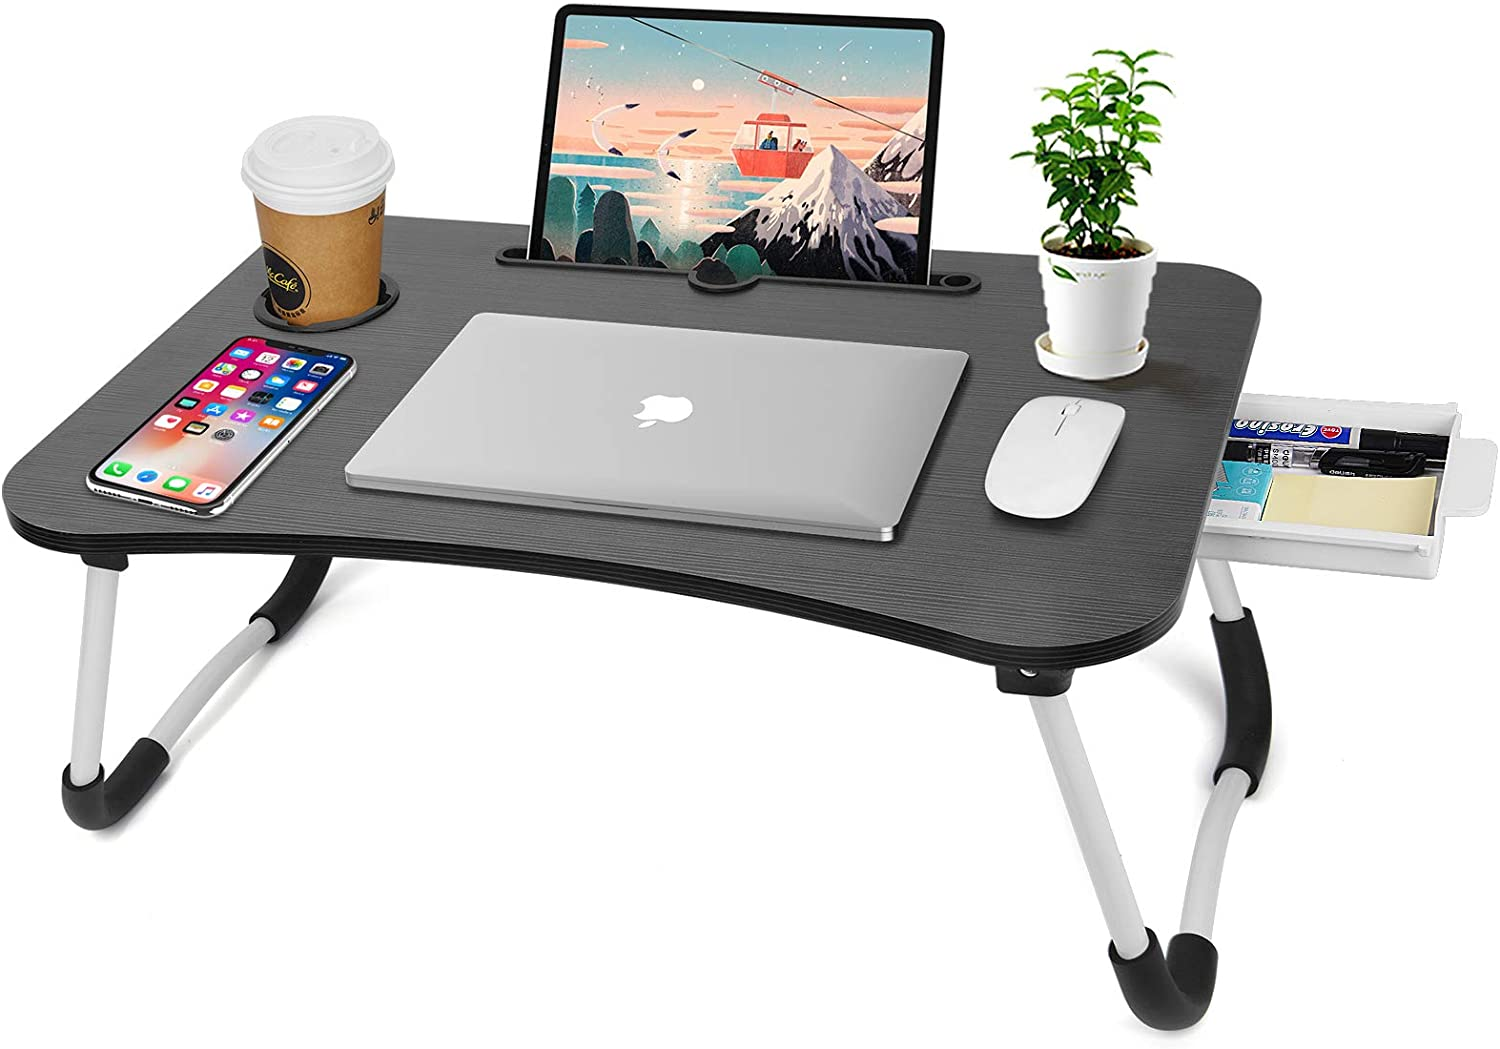 Laptop Stand for Bed, Foldable Laptop Bed Tray Table with Storage Drawer and Cup Slot,Lap Table for Eating,Working,Reading Book on Bed/Sofa/Floor (Black A)